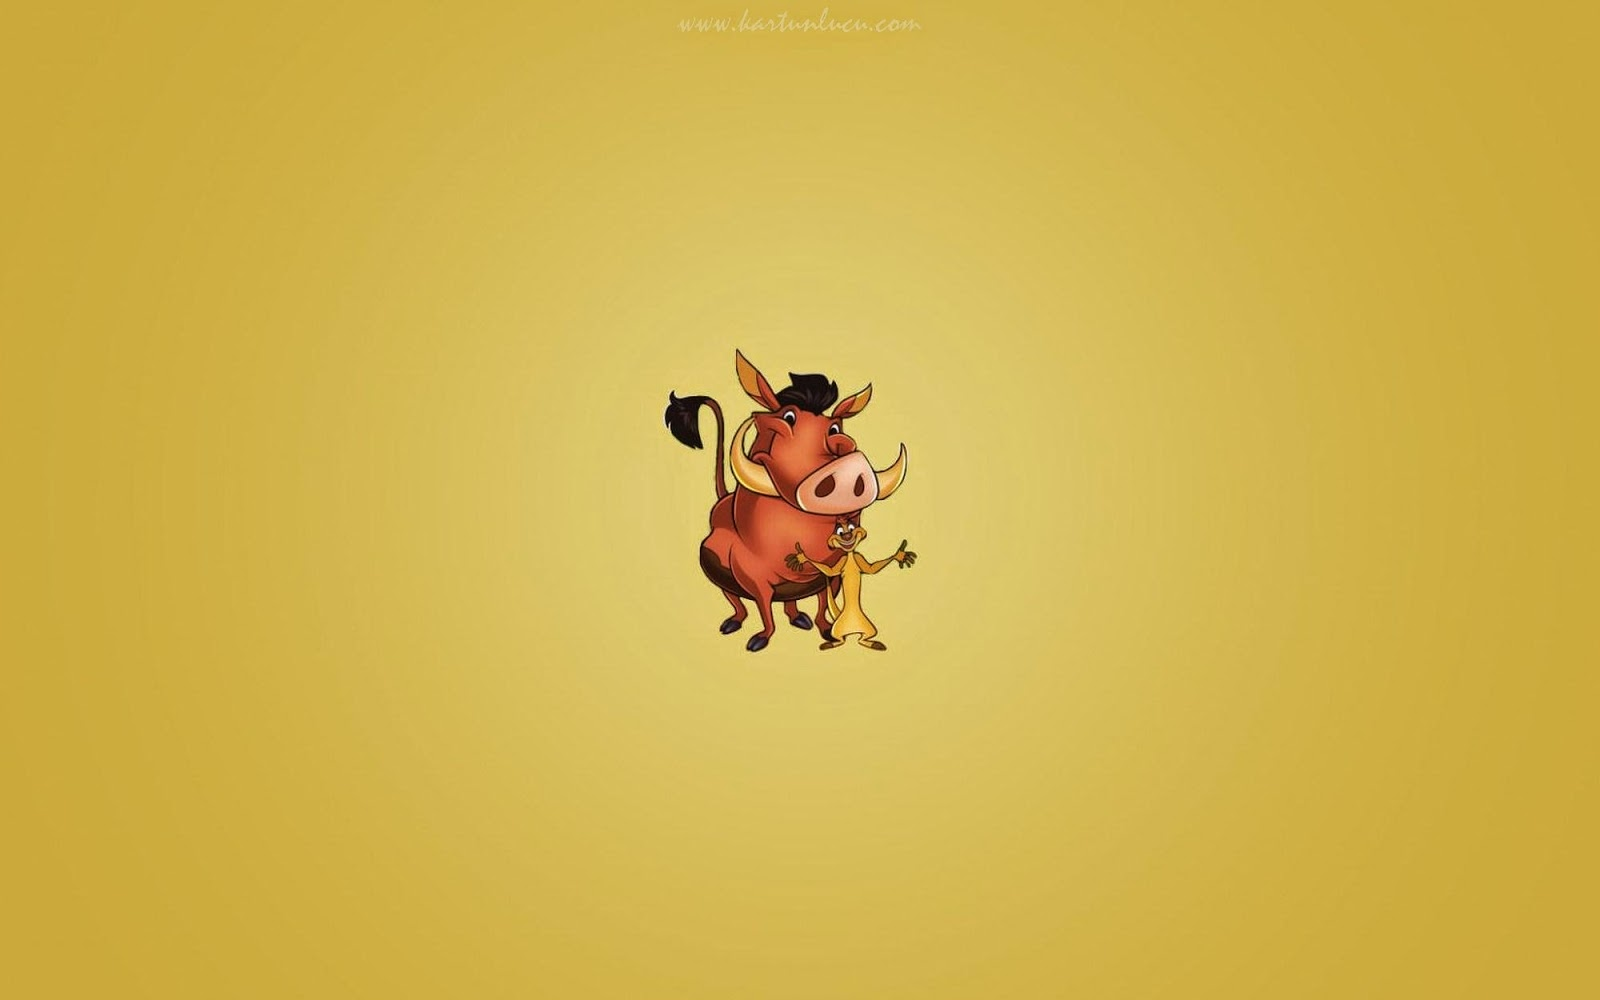 Wallpaper Kartun Lucu 3d Image Gallery Pumba And Timon